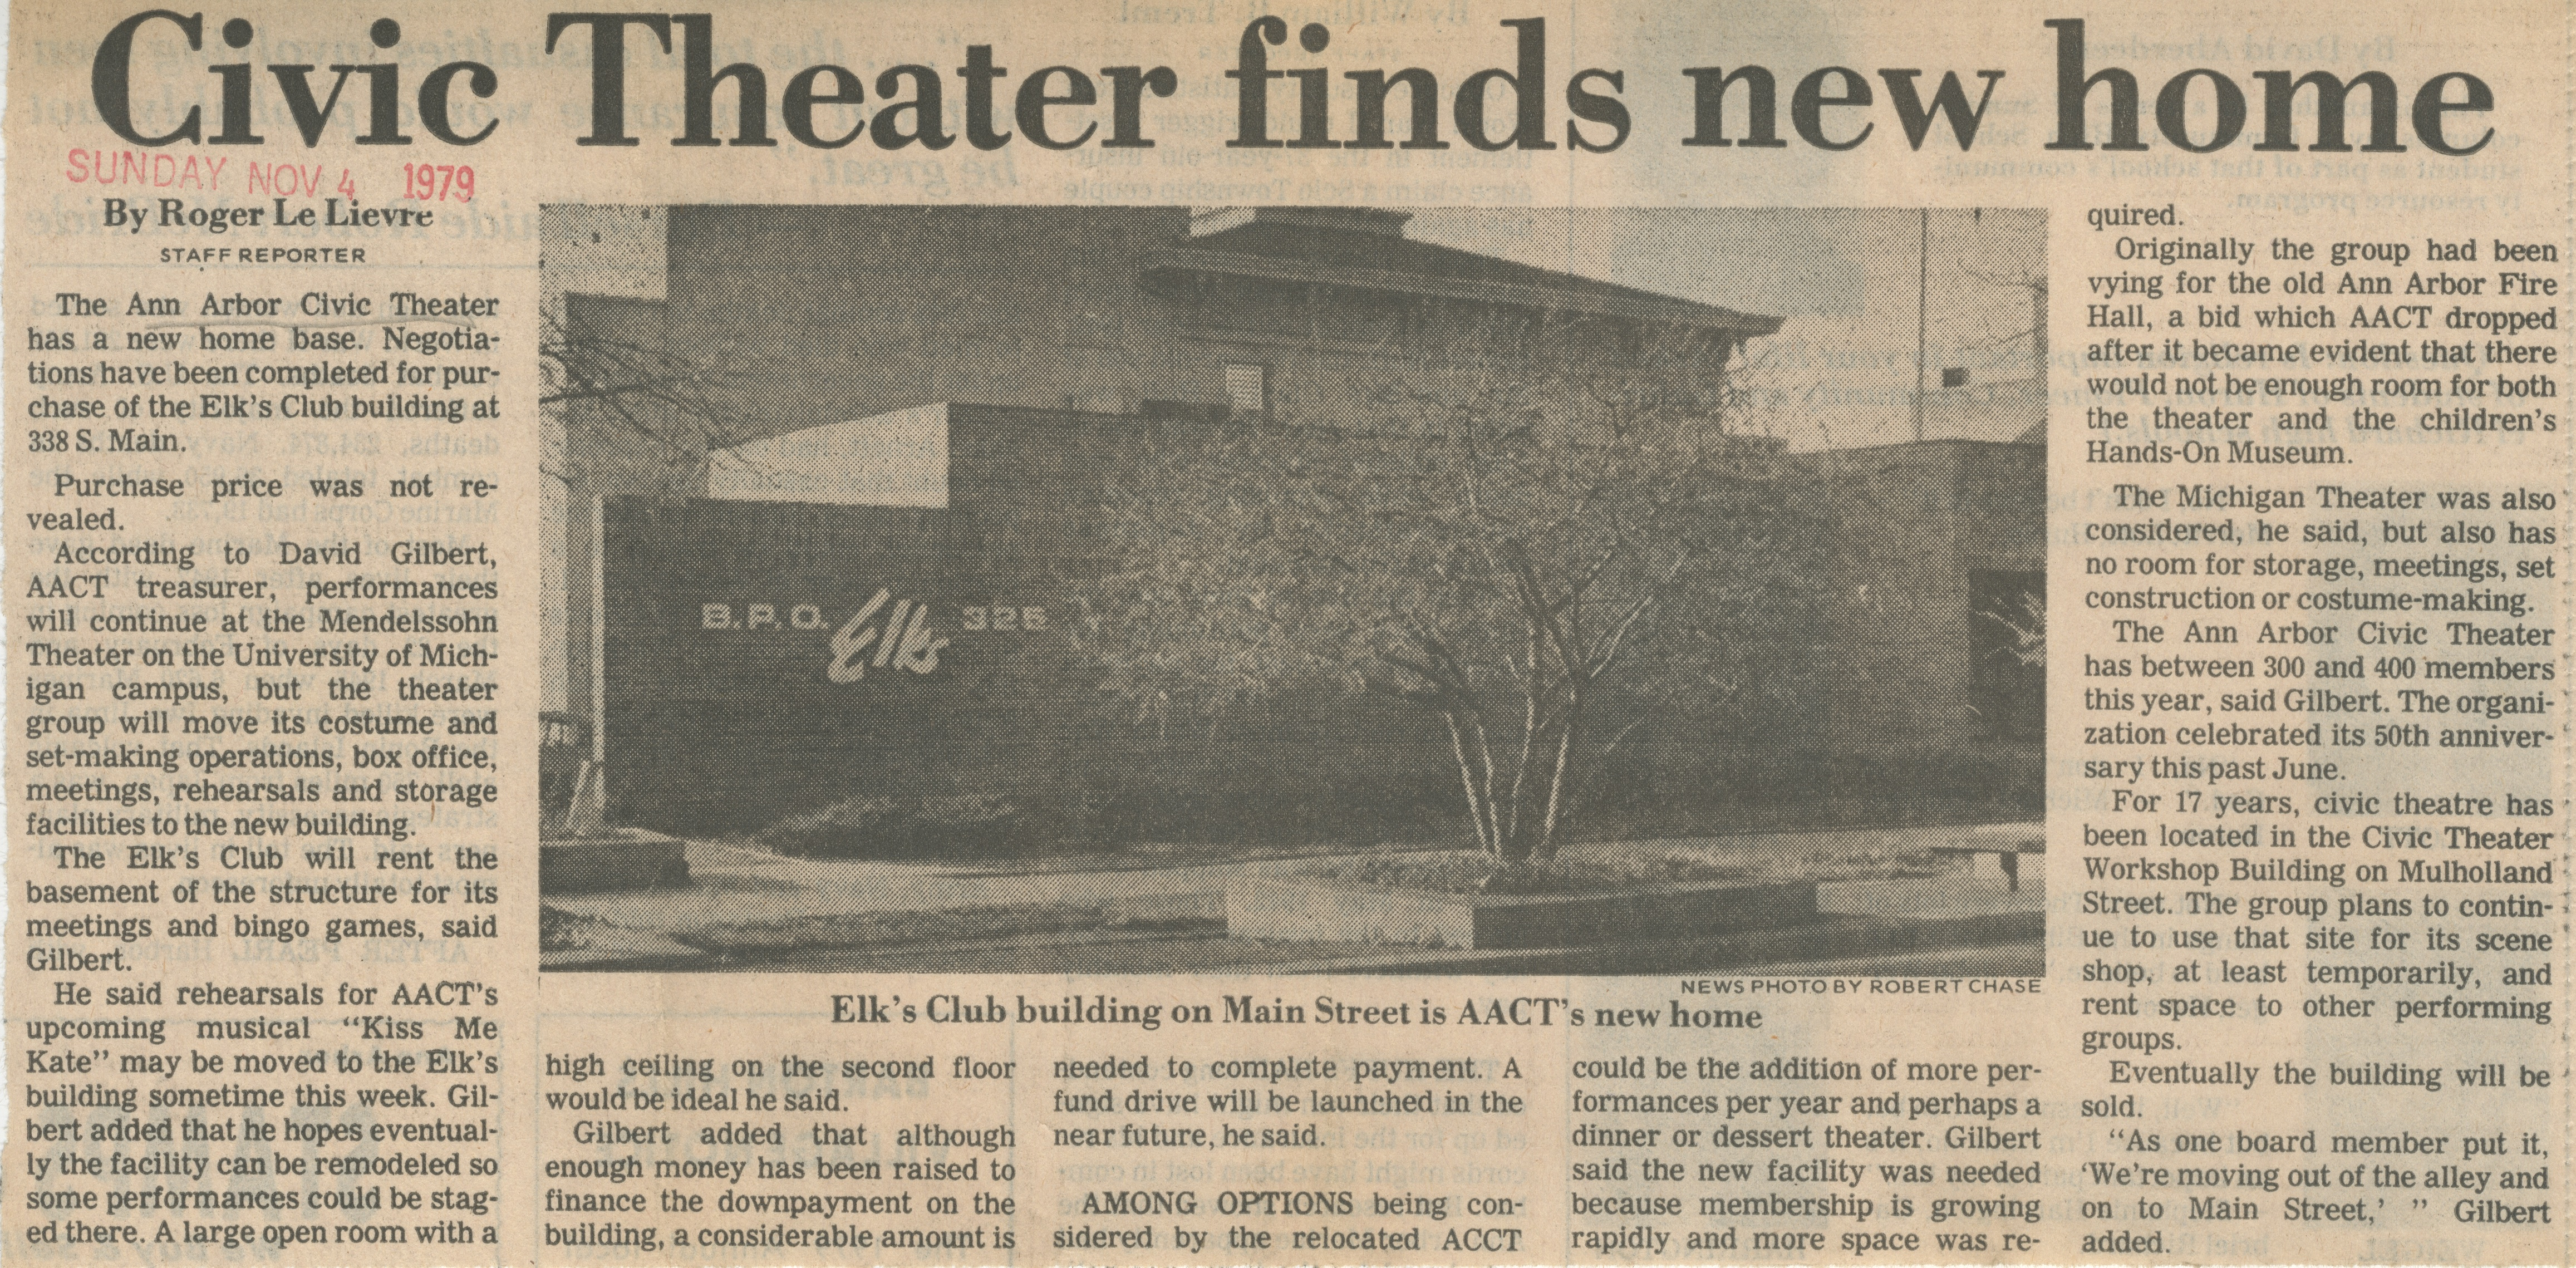 Civic Theater Finds New Home image